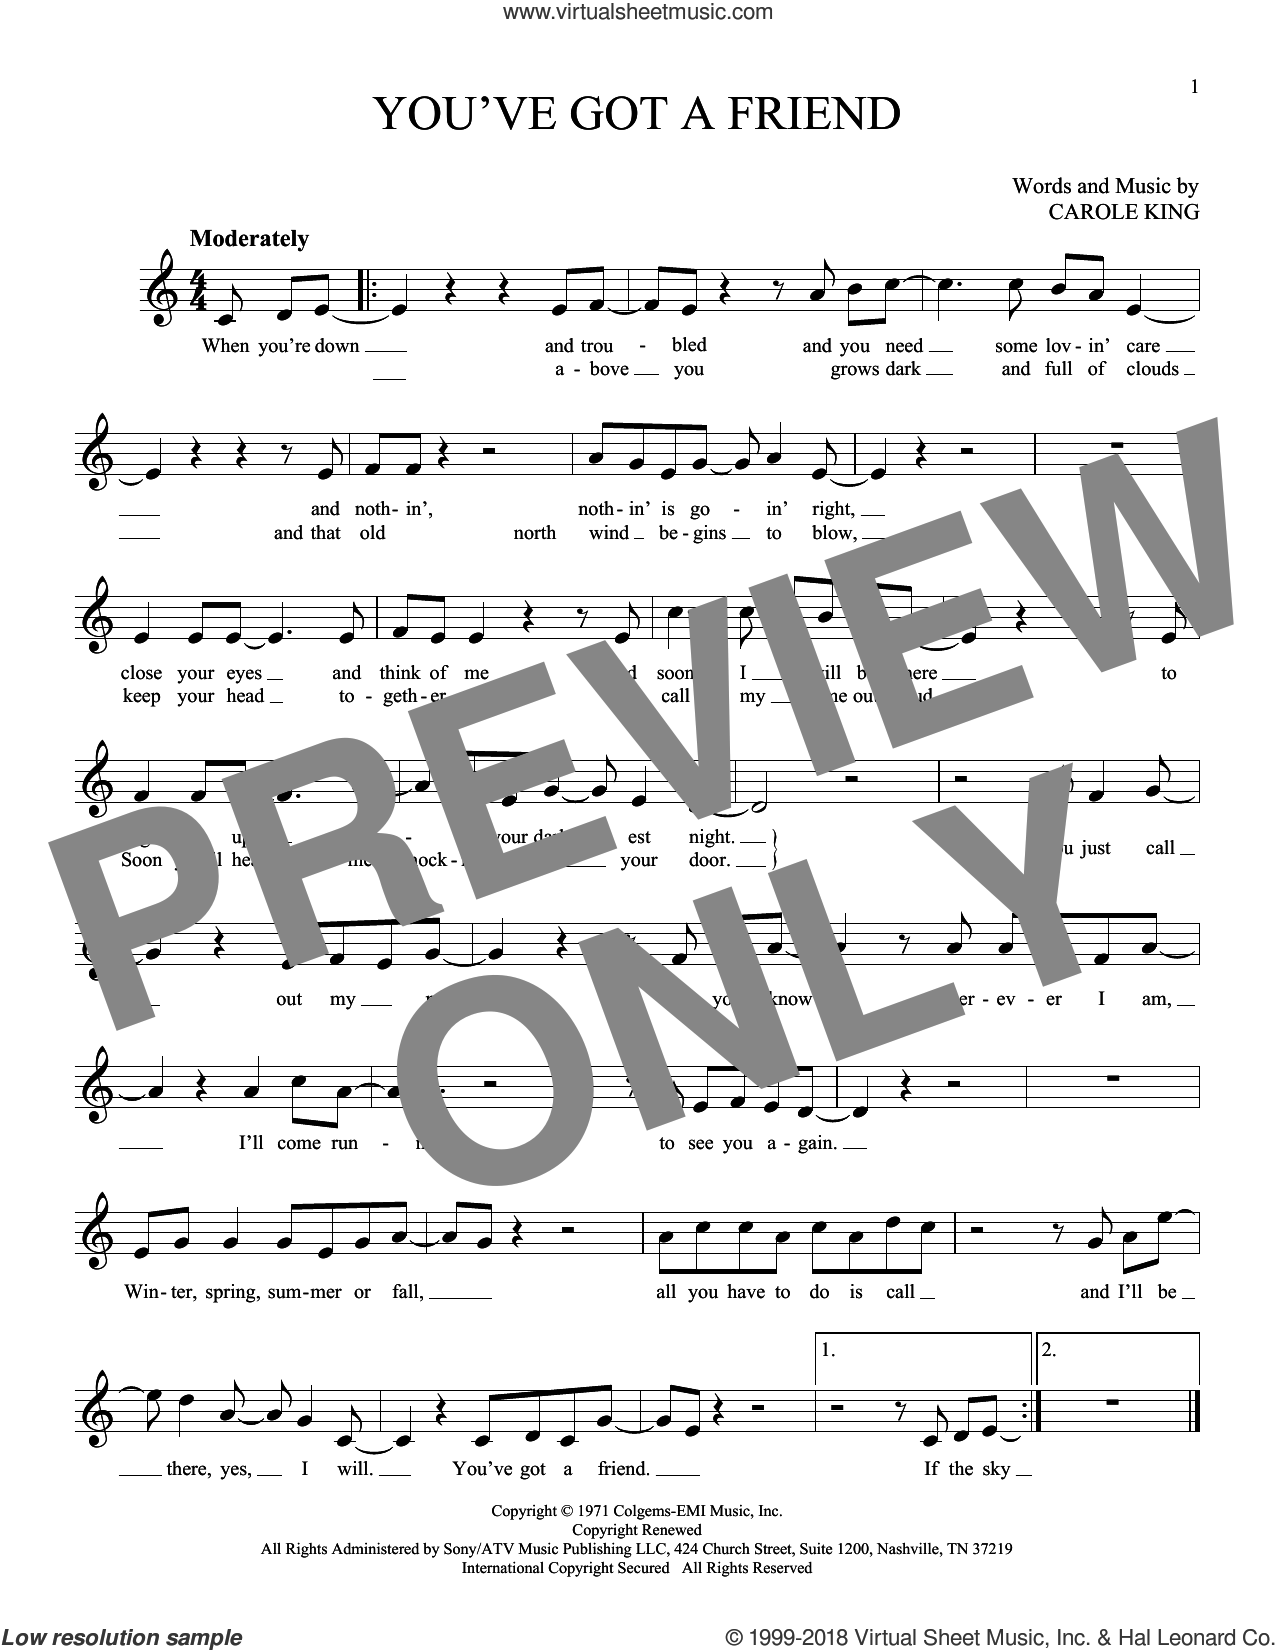 You've Got A Friend sheet music for ocarina solo by James Taylor and Carole King, intermediate skill level